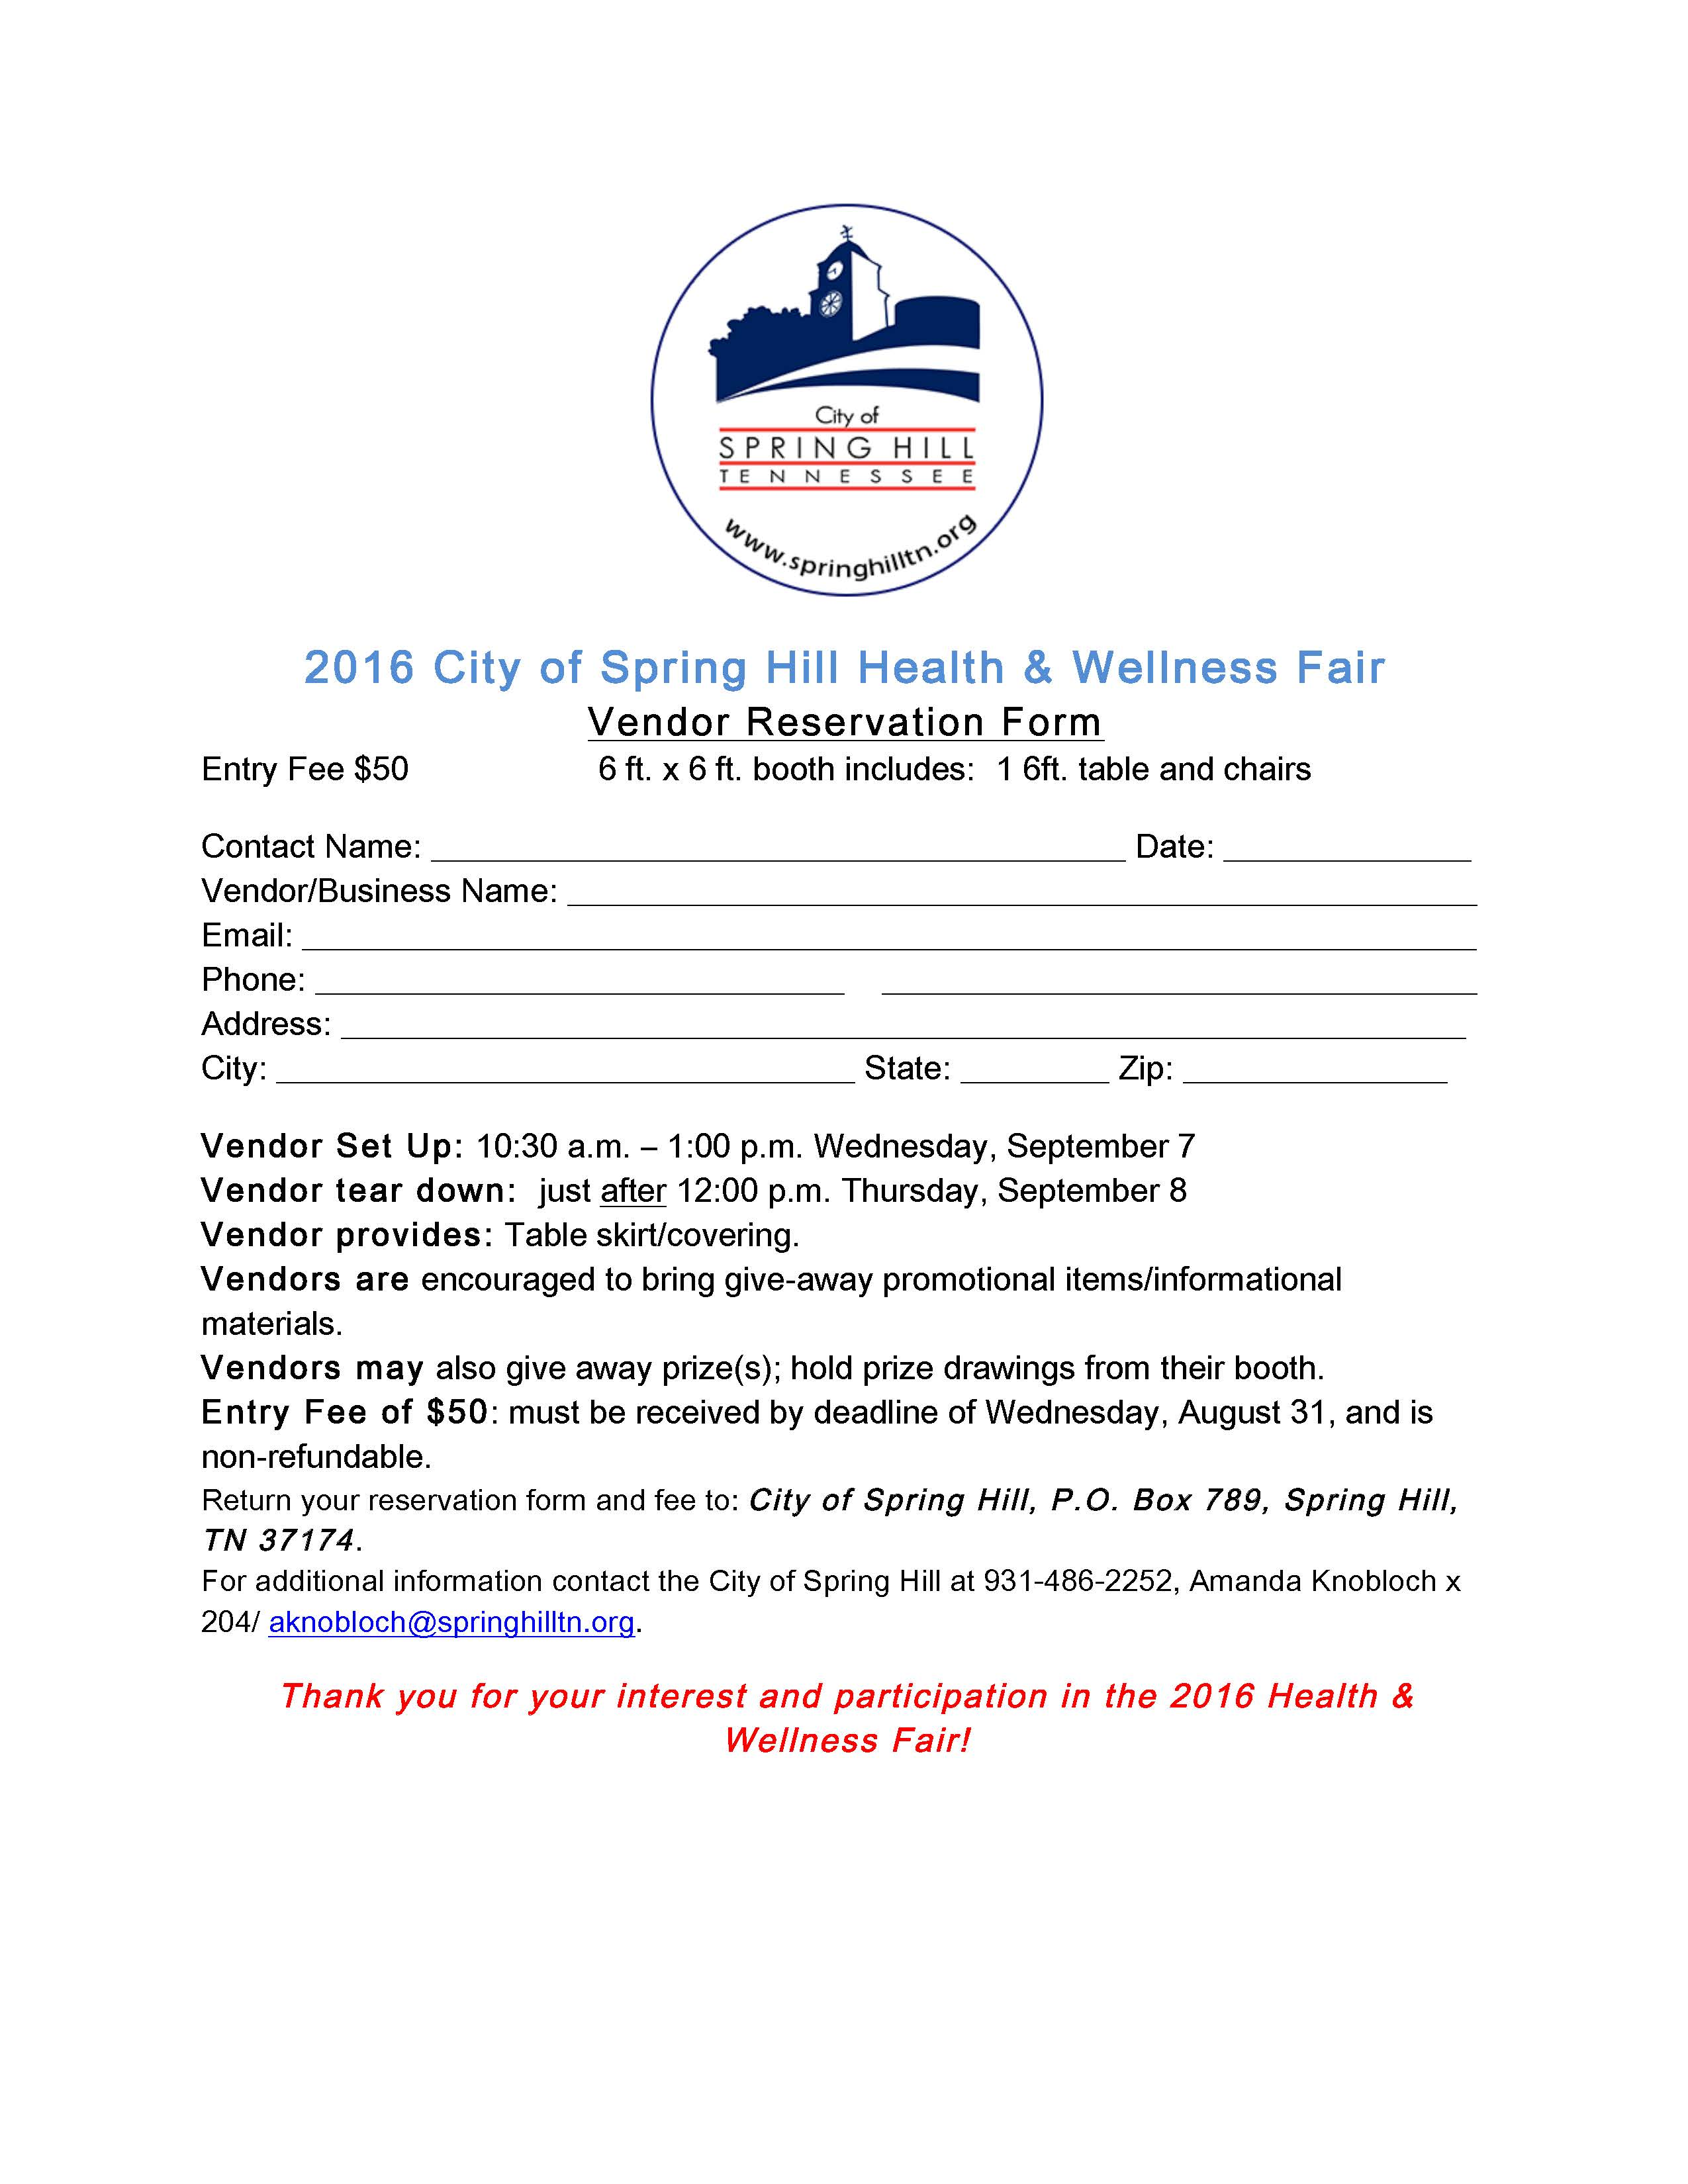 Health Fair vendor form